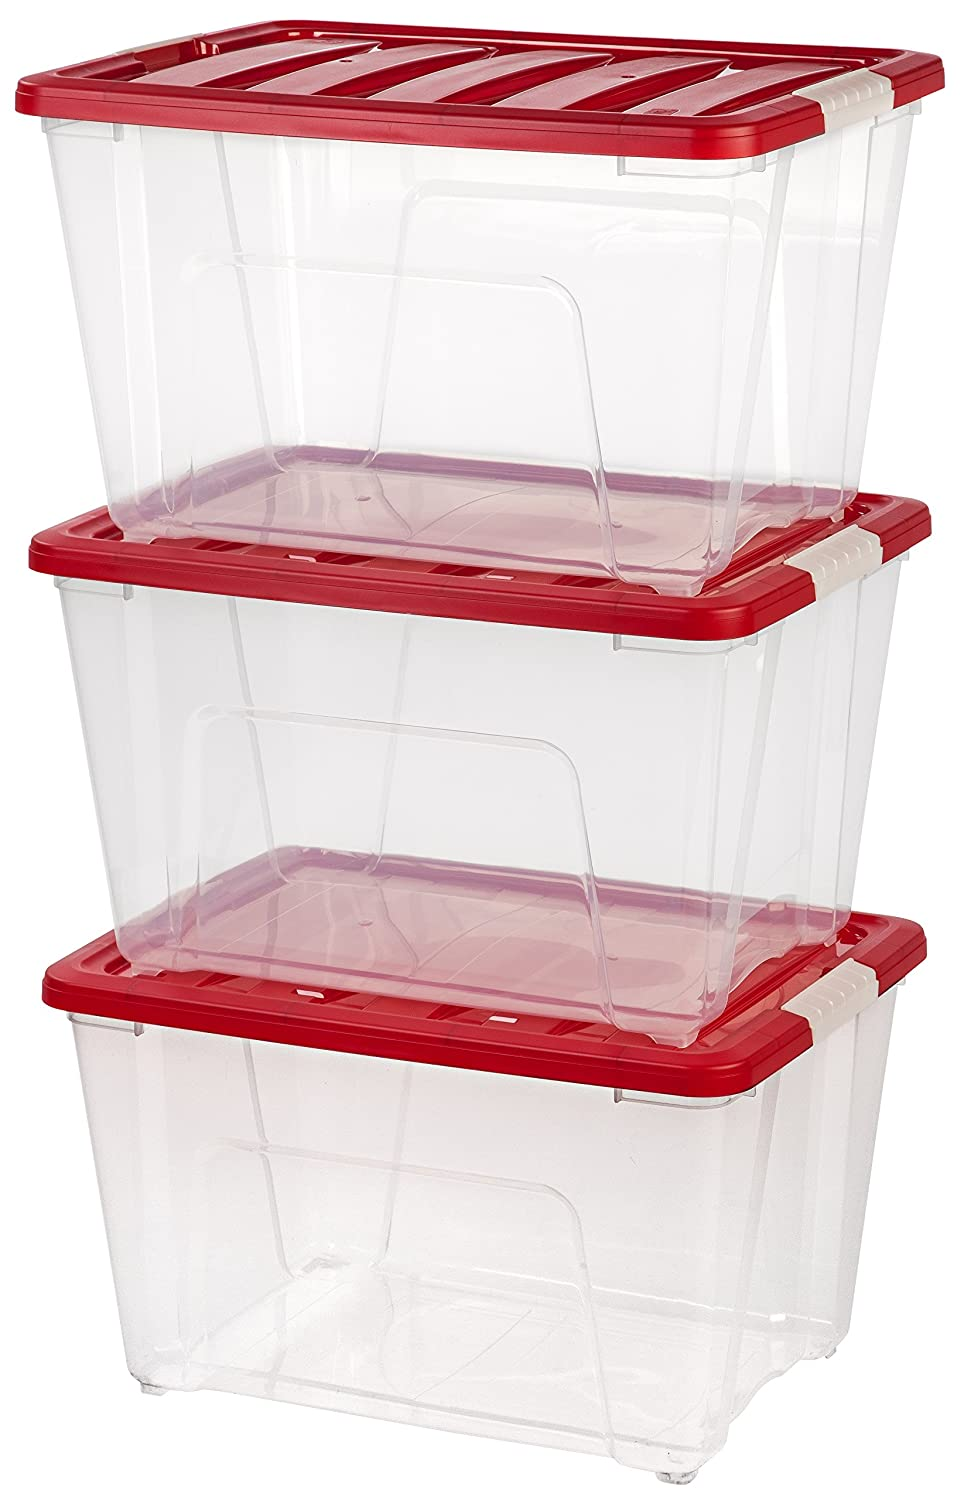 Amazon.com: IRIS 53 Quart Holiday Plastic Storage Tote Set, 3 Pack ...